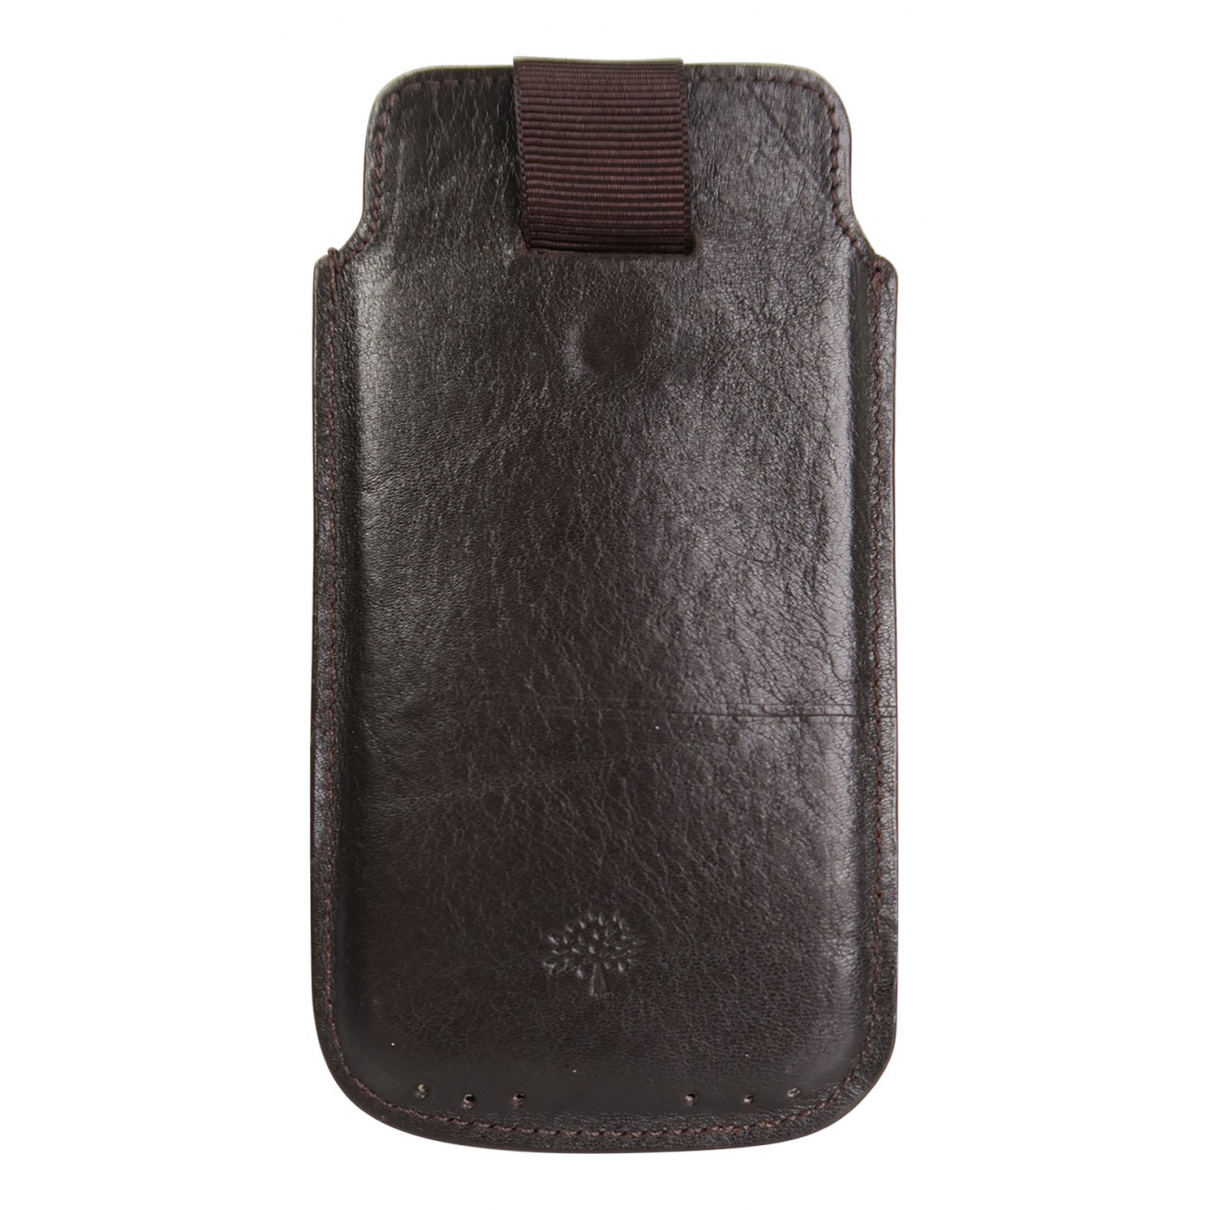 Mulberry N Brown Leather Accessories for Life & Living N